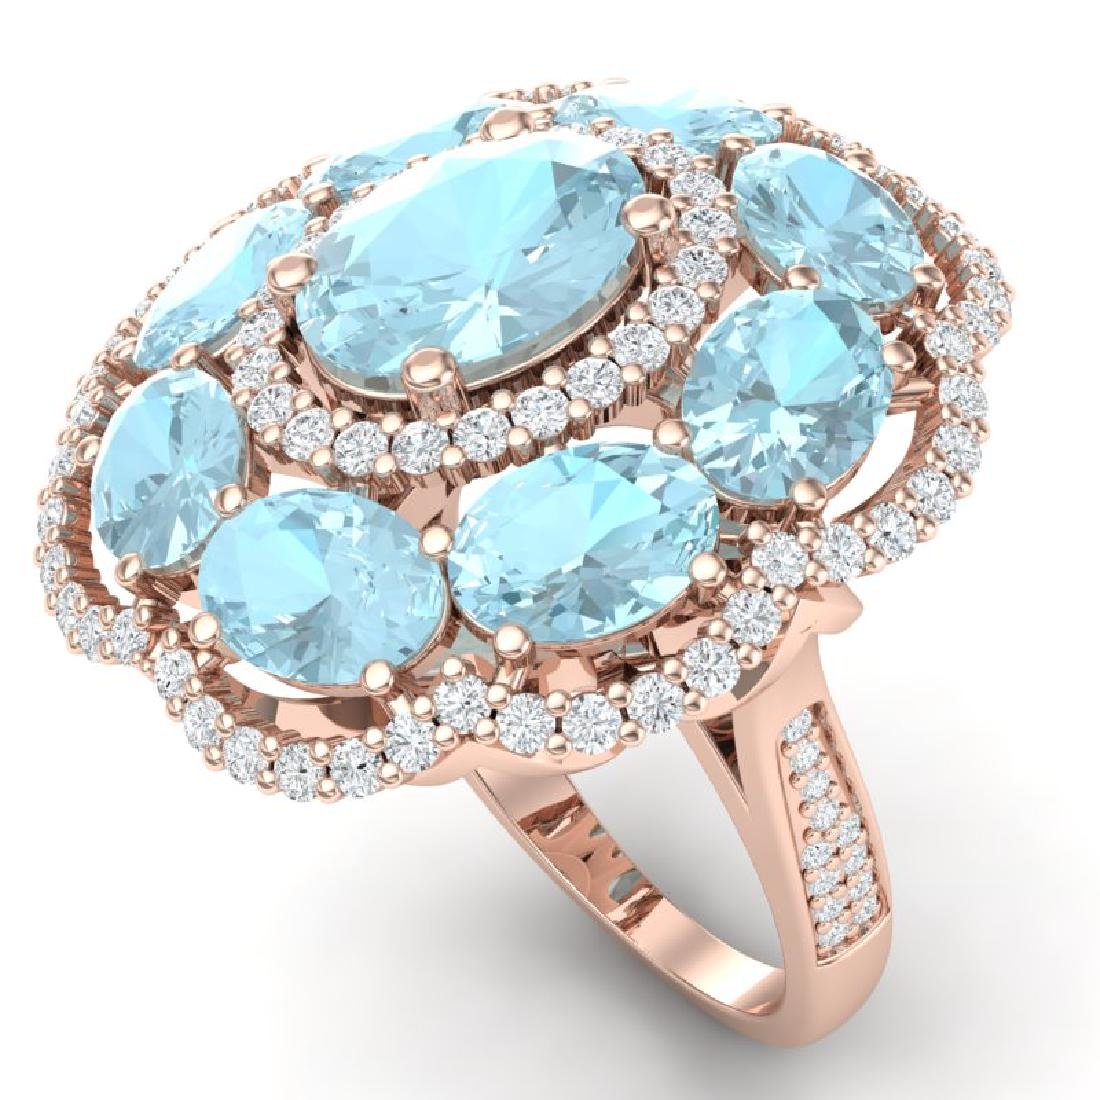 14.89 CTW Royalty Sky Topaz & VS Diamond Ring 18K Rose